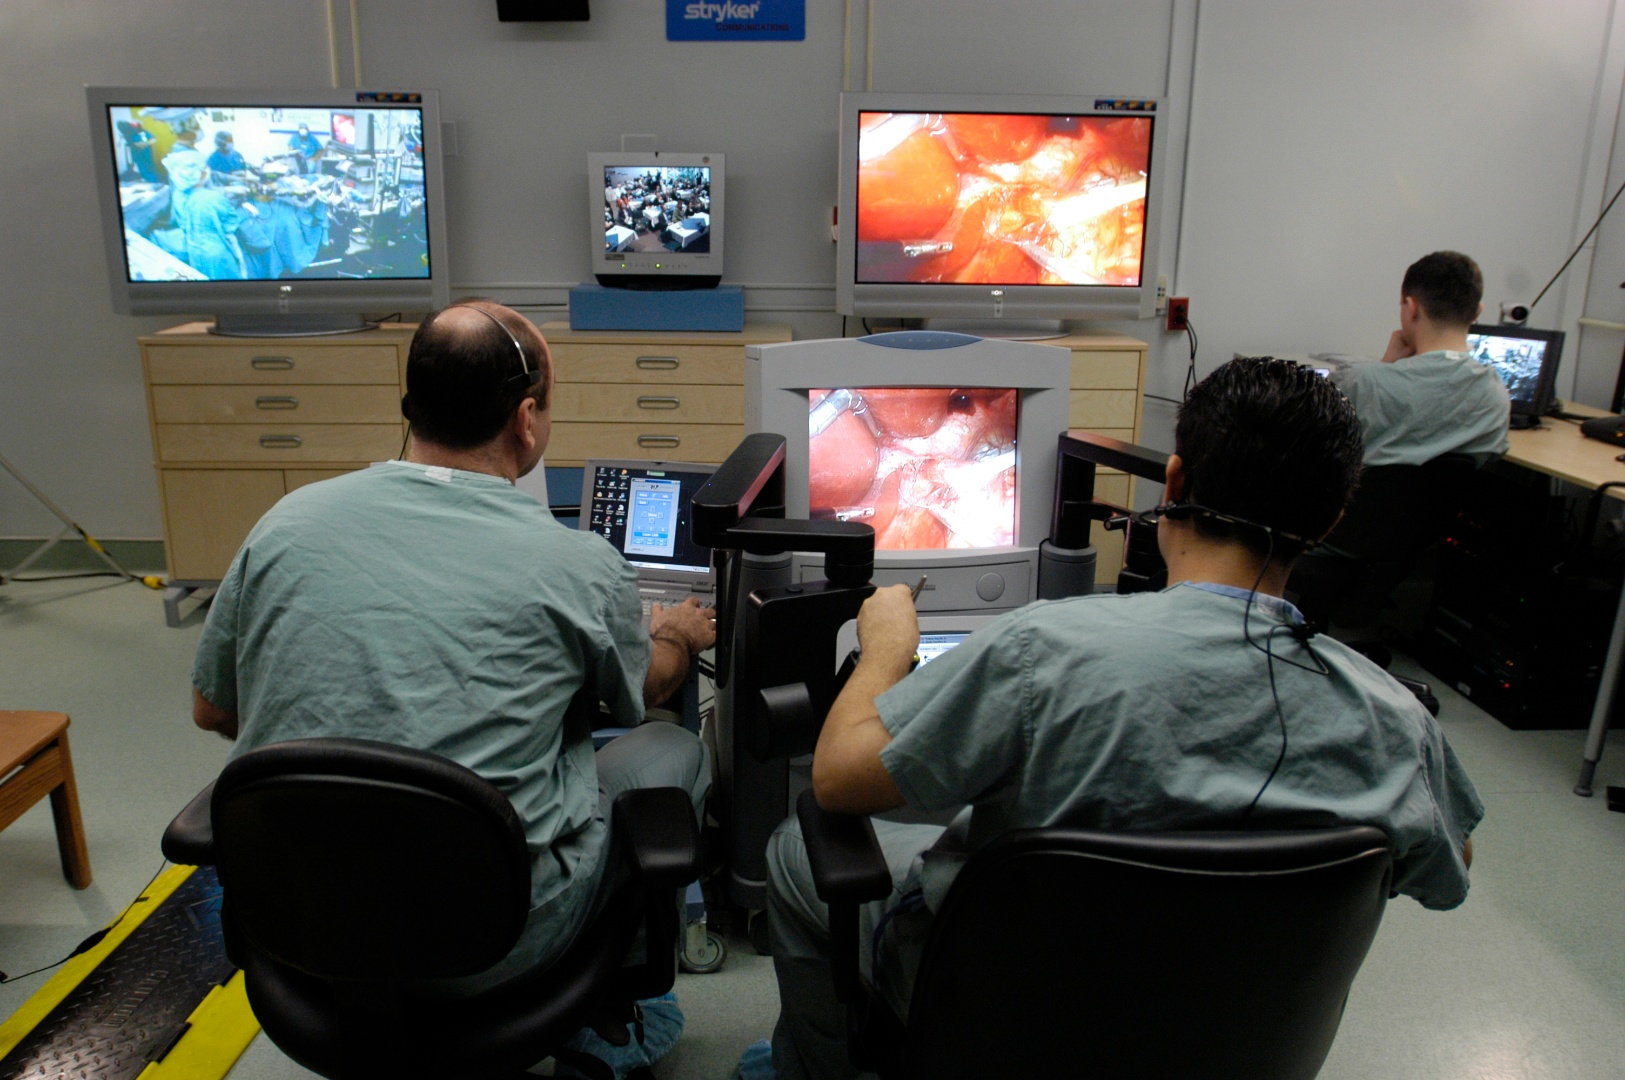 Doctors using telementoring equipment